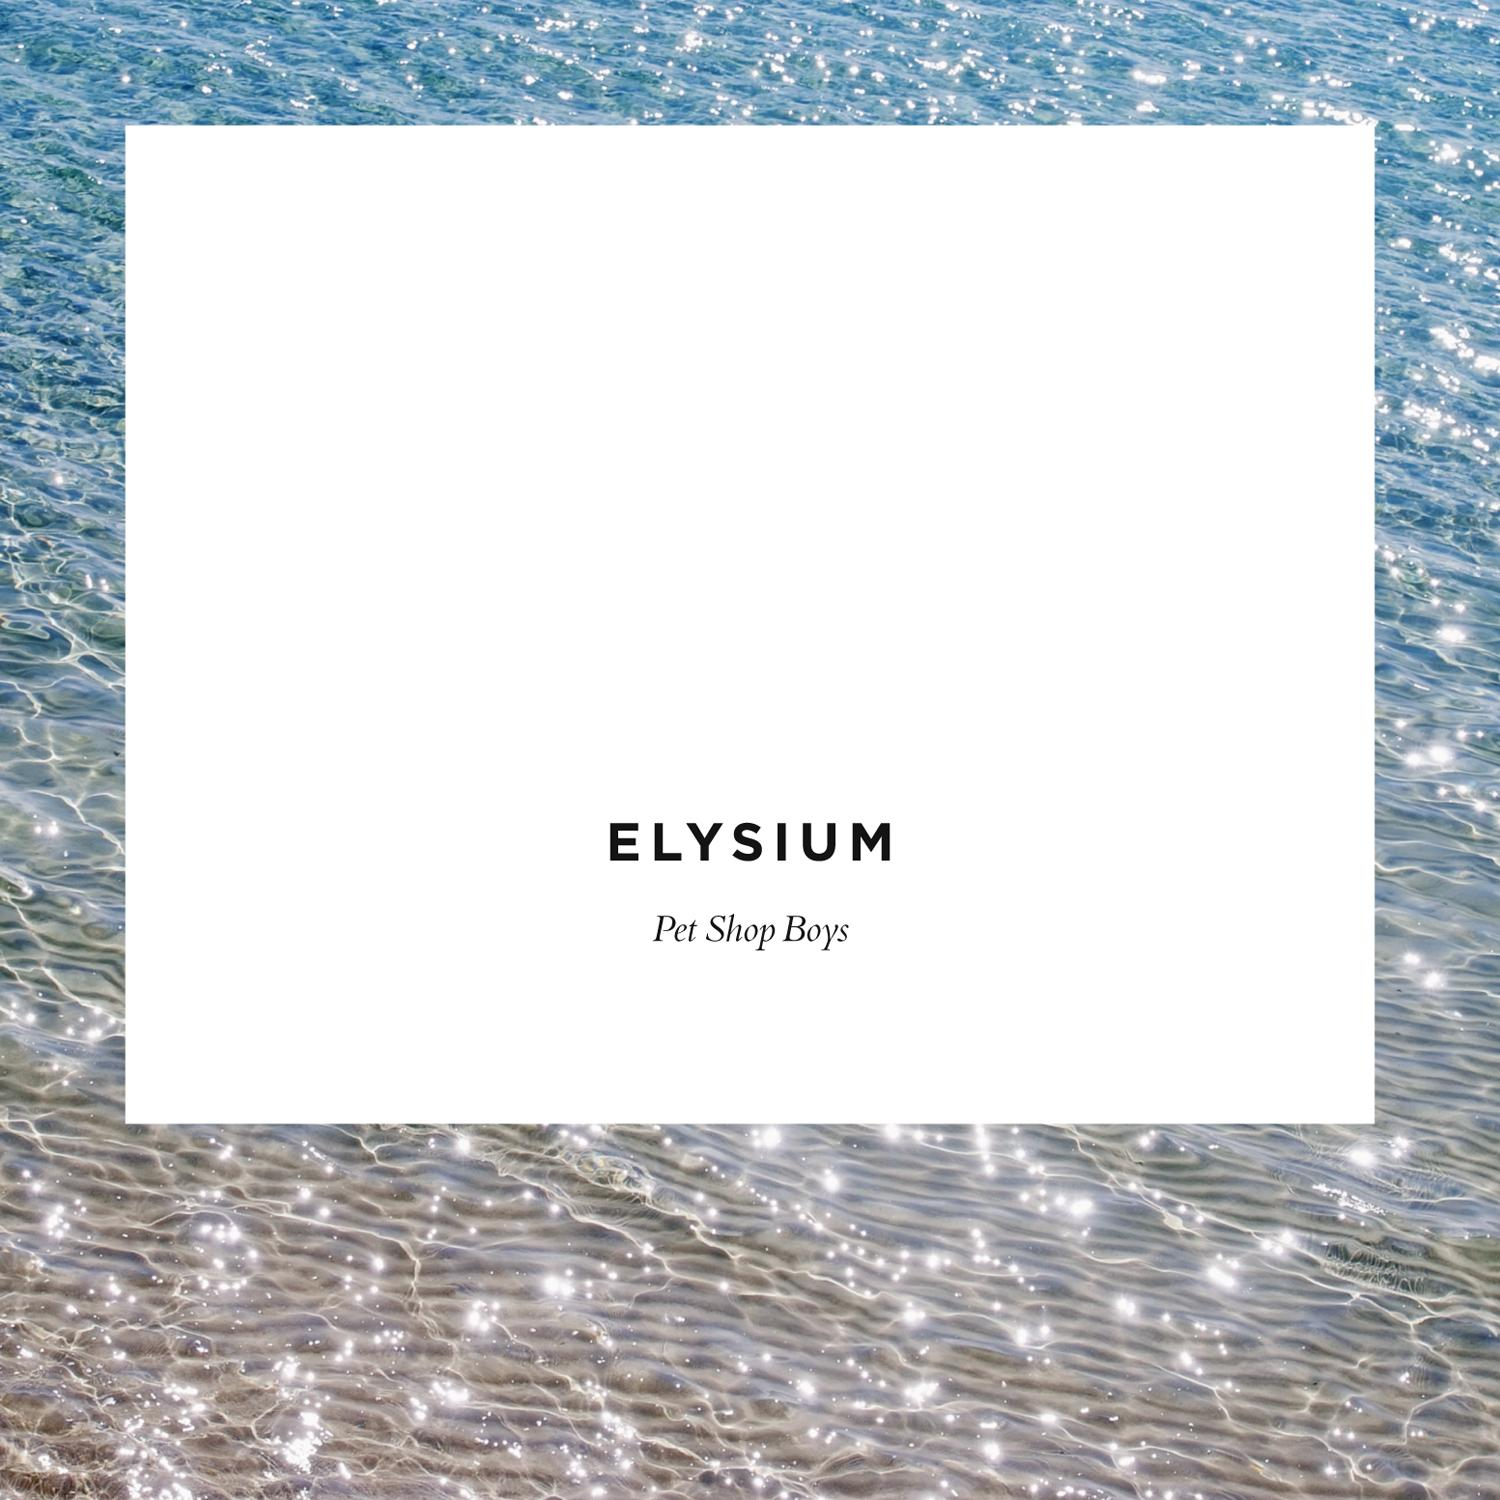 Pet Shop Boys – Elysium